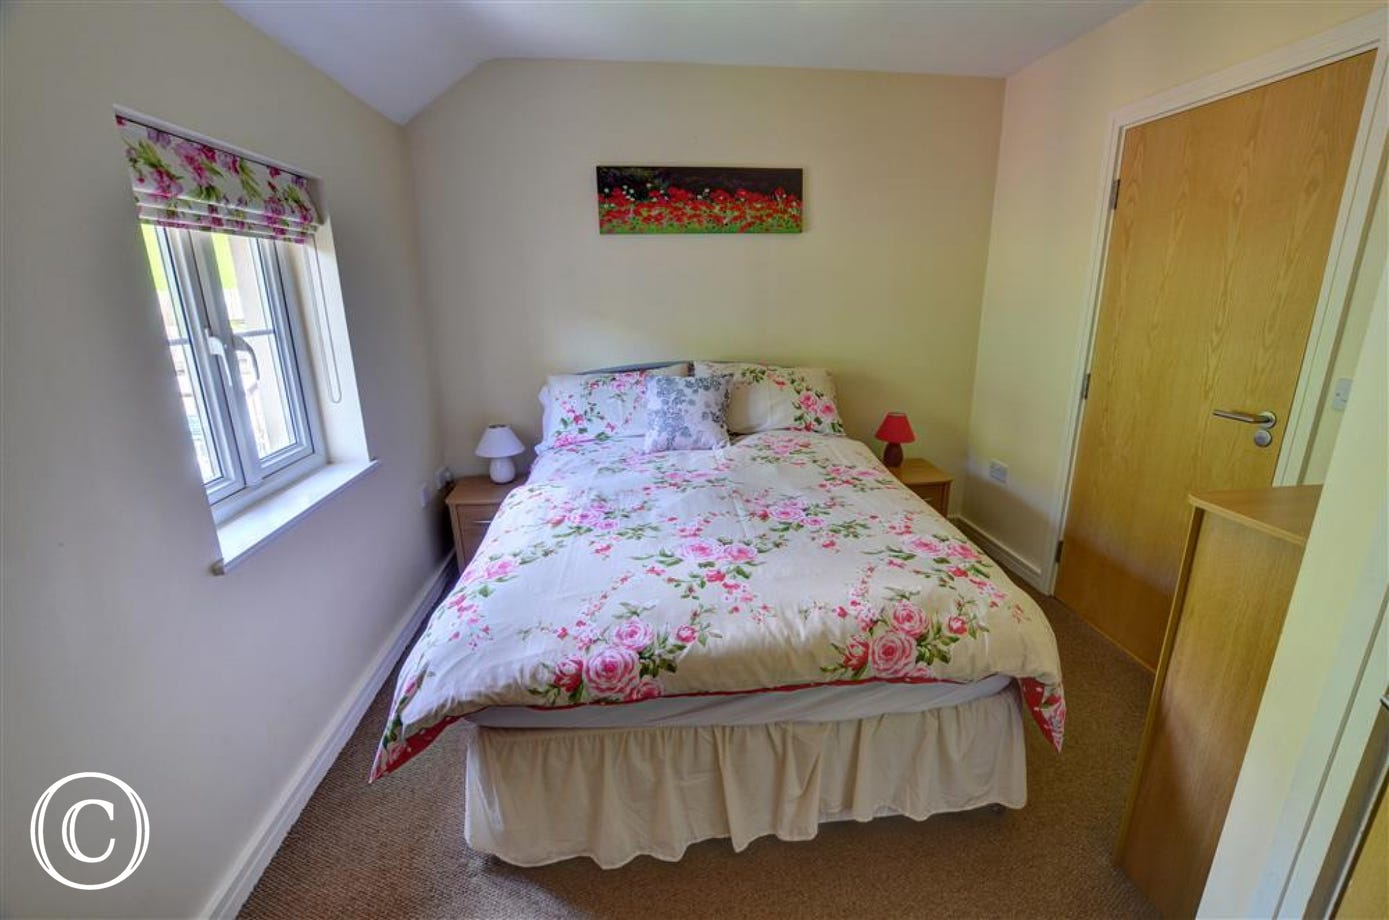 The main double bedroom has attractive furnishings